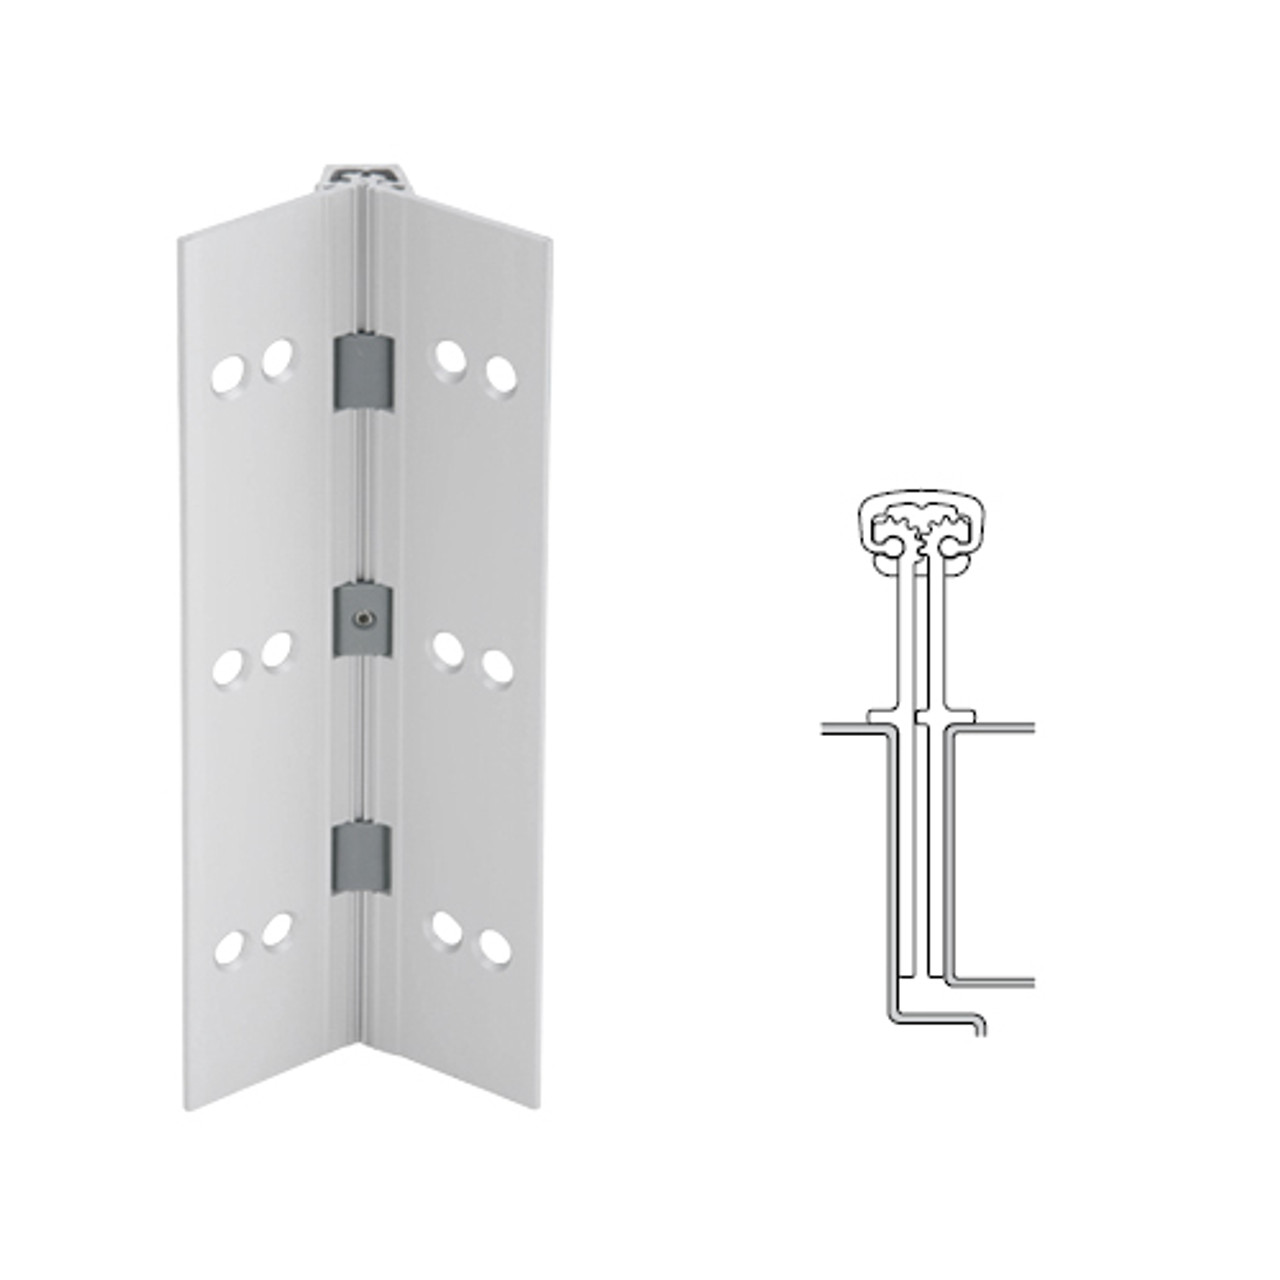 040XY-US28-85-SECWDWD IVES Full Mortise Continuous Geared Hinges with Security Screws - Hex Pin Drive in Satin Aluminum